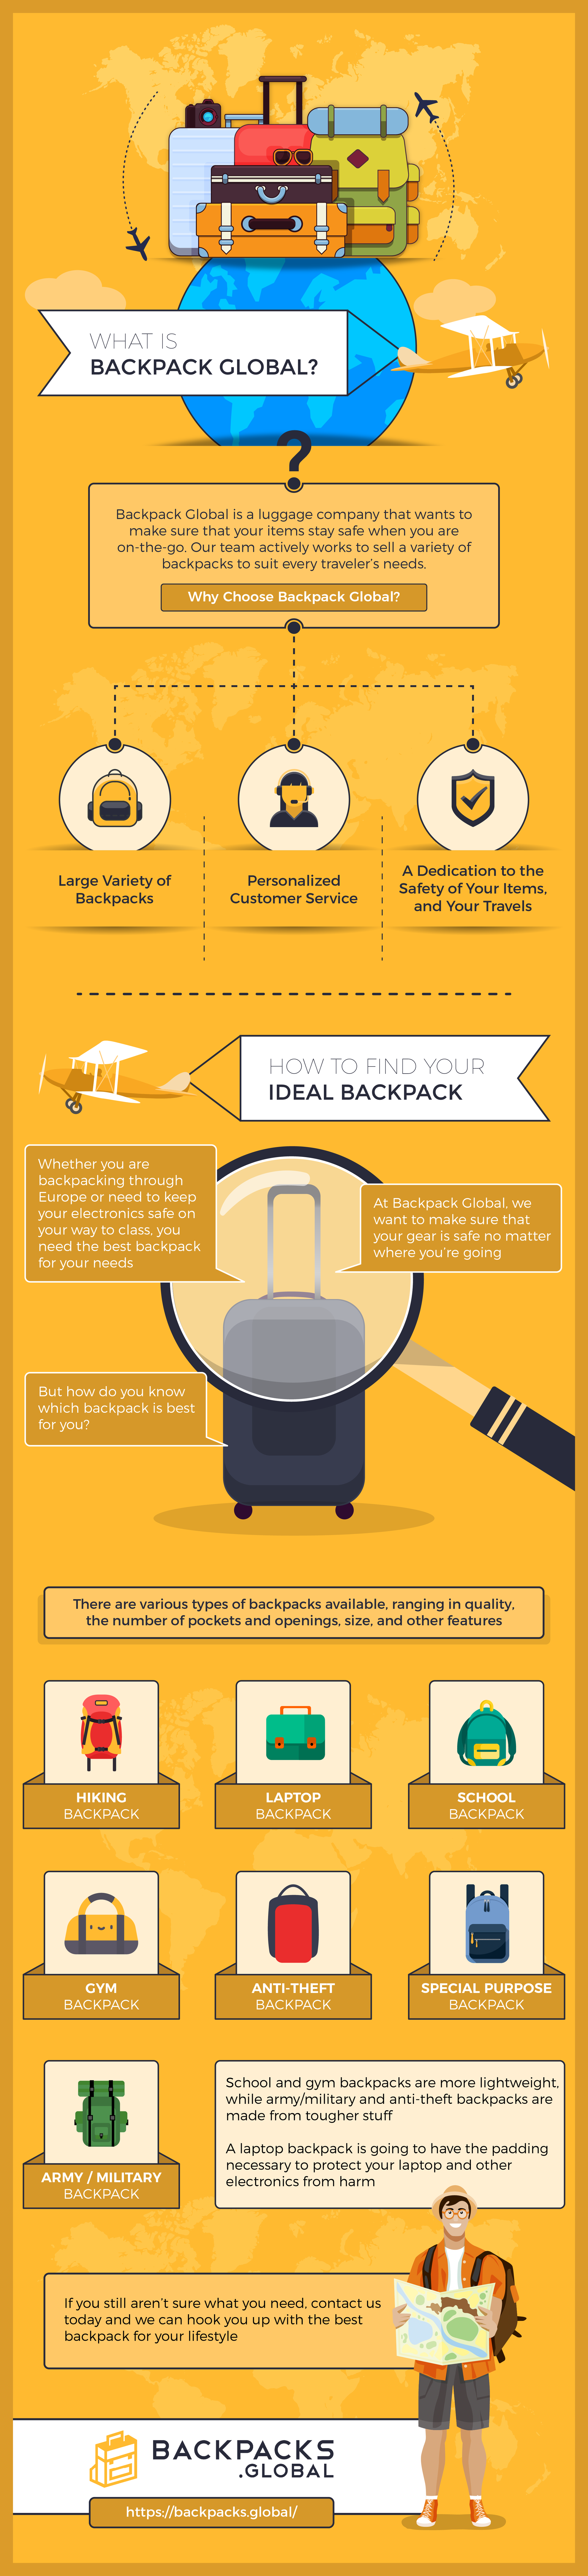 What is Backpack Global?